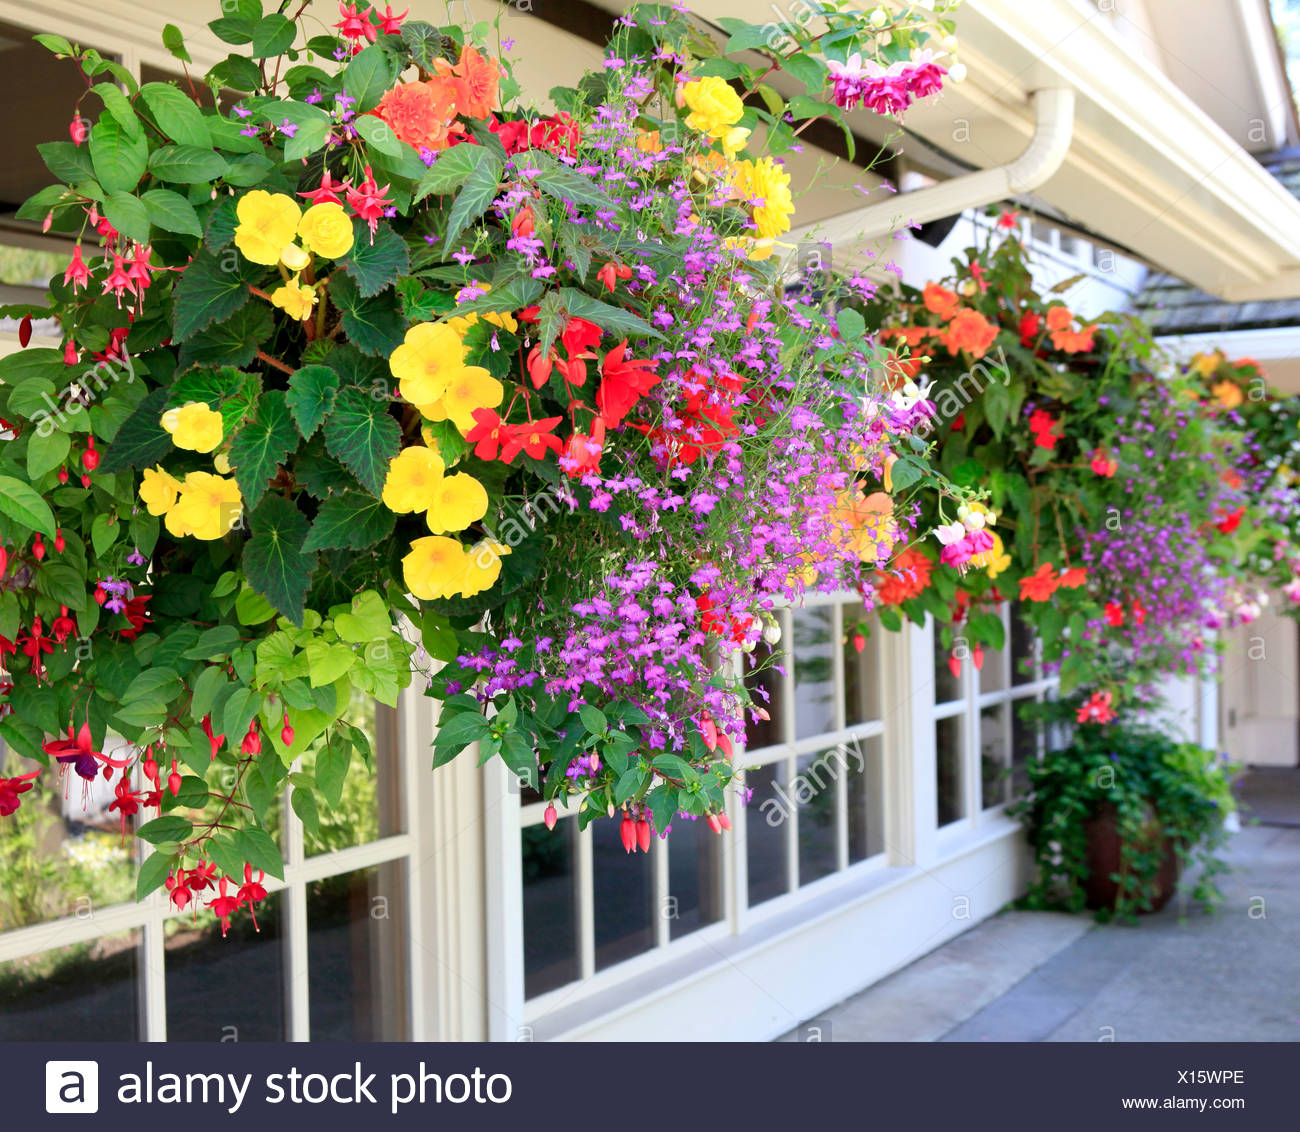 Many hanging baskets with flowers outside of house windows